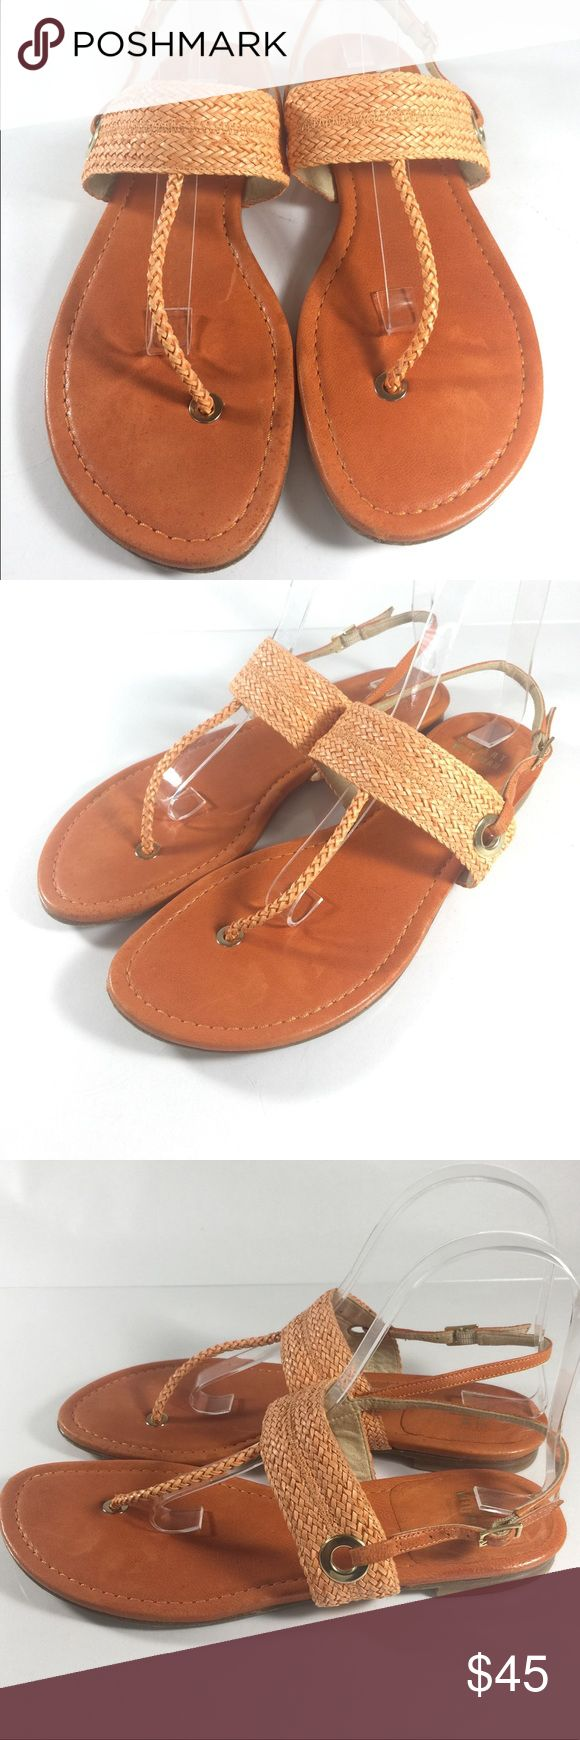 Stuart Weitzman Orange Braided T Strap Sandals 7.5 Up for sale is this cute pair of Stuart Weitzman orange leather sandals. Great pop of color! Braided strap detail, this pair is a must!  Women's Size US 7.5  CONDITION: Good Condition! Overall signs of minor wear. Please see photos Stuart Weitzman Shoes Sandals